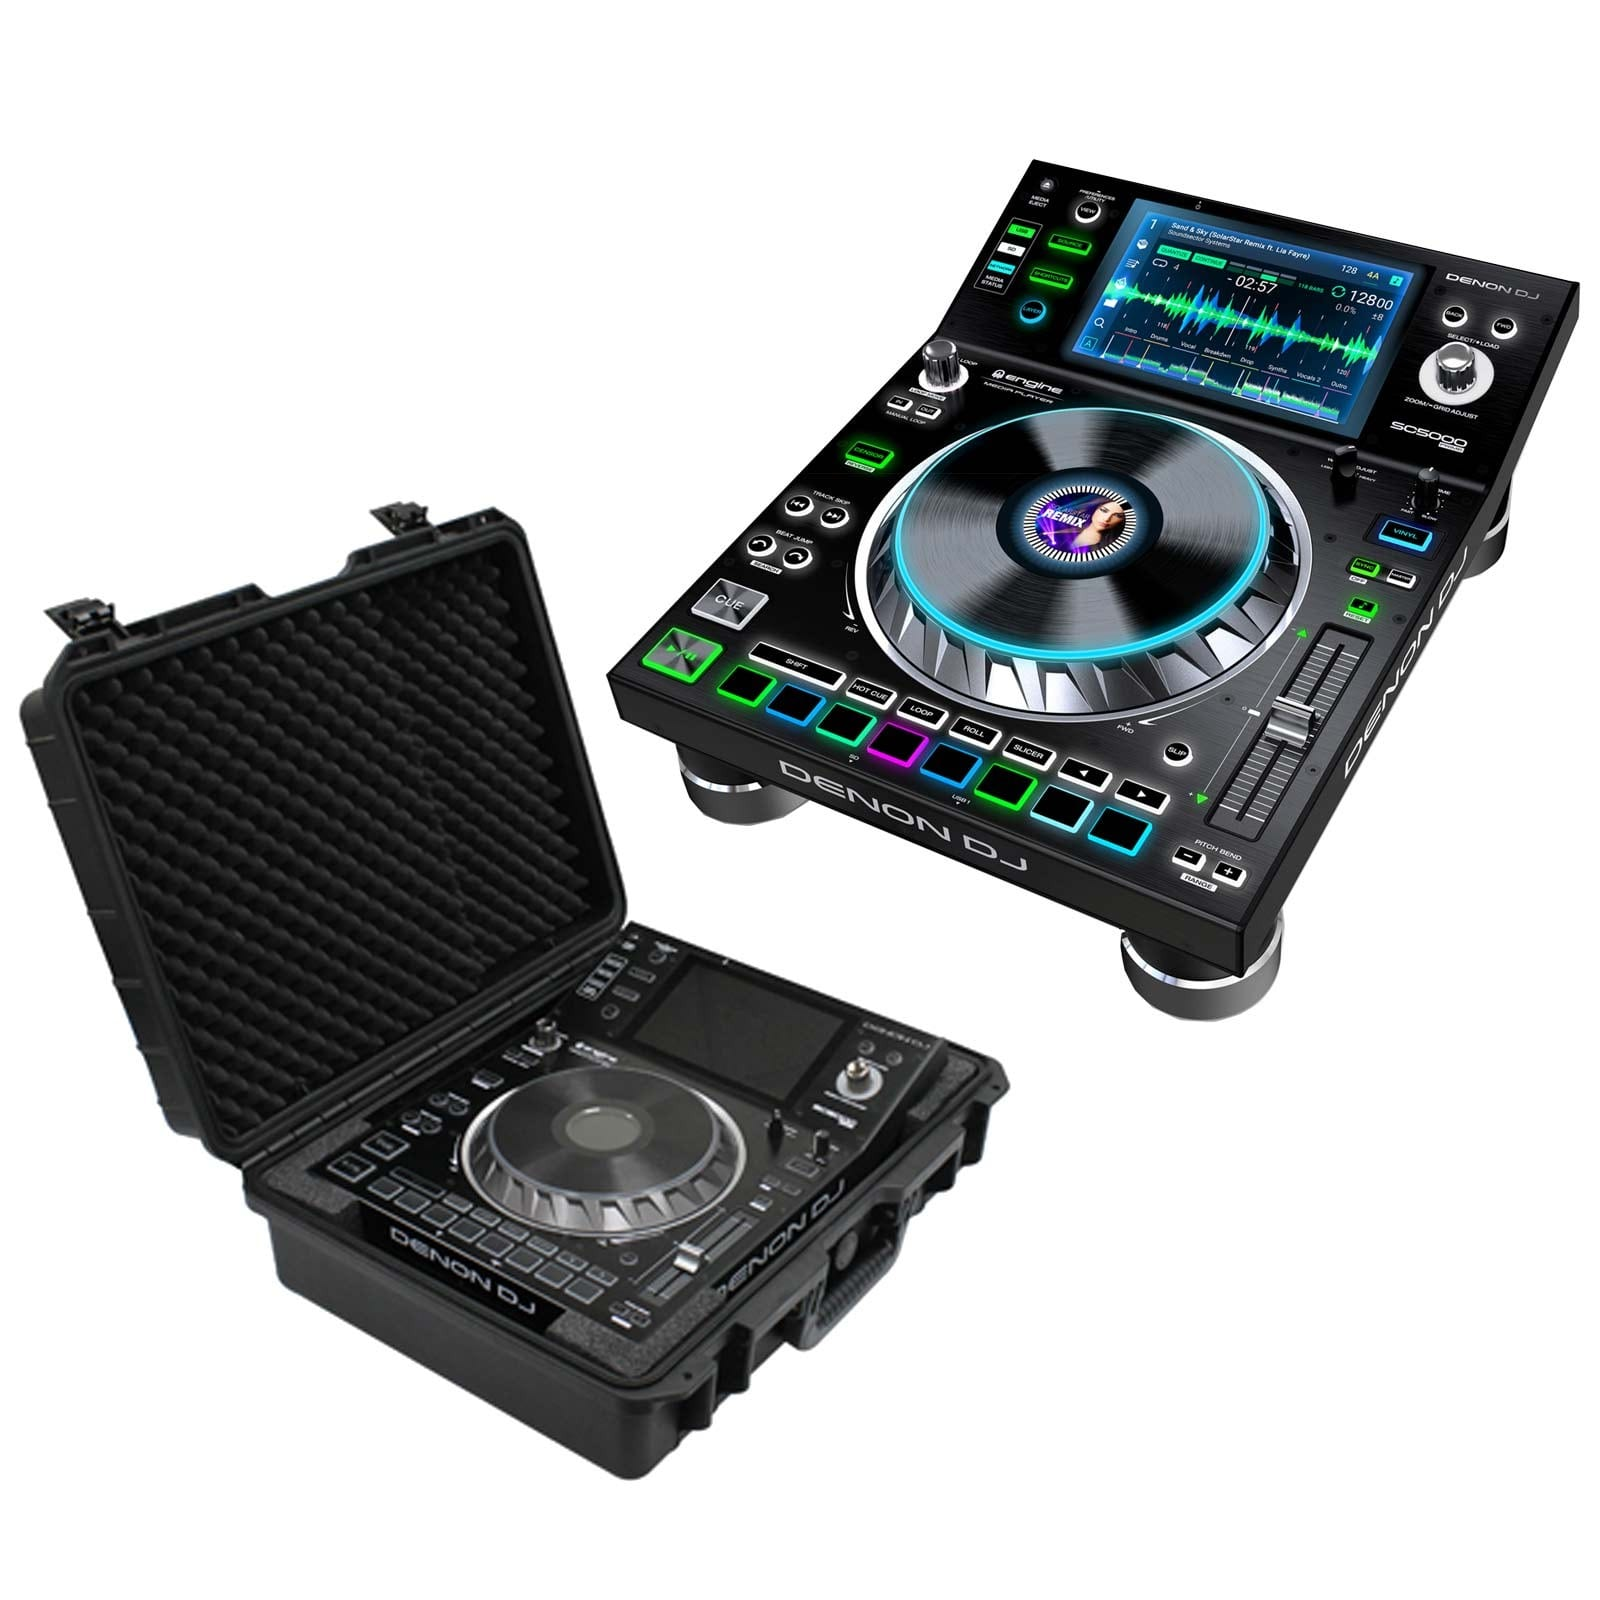 denon-dj-sc5000-prime-professional-dj-media-player-packaged-with-odyssey-carry-case-7d1.jpg